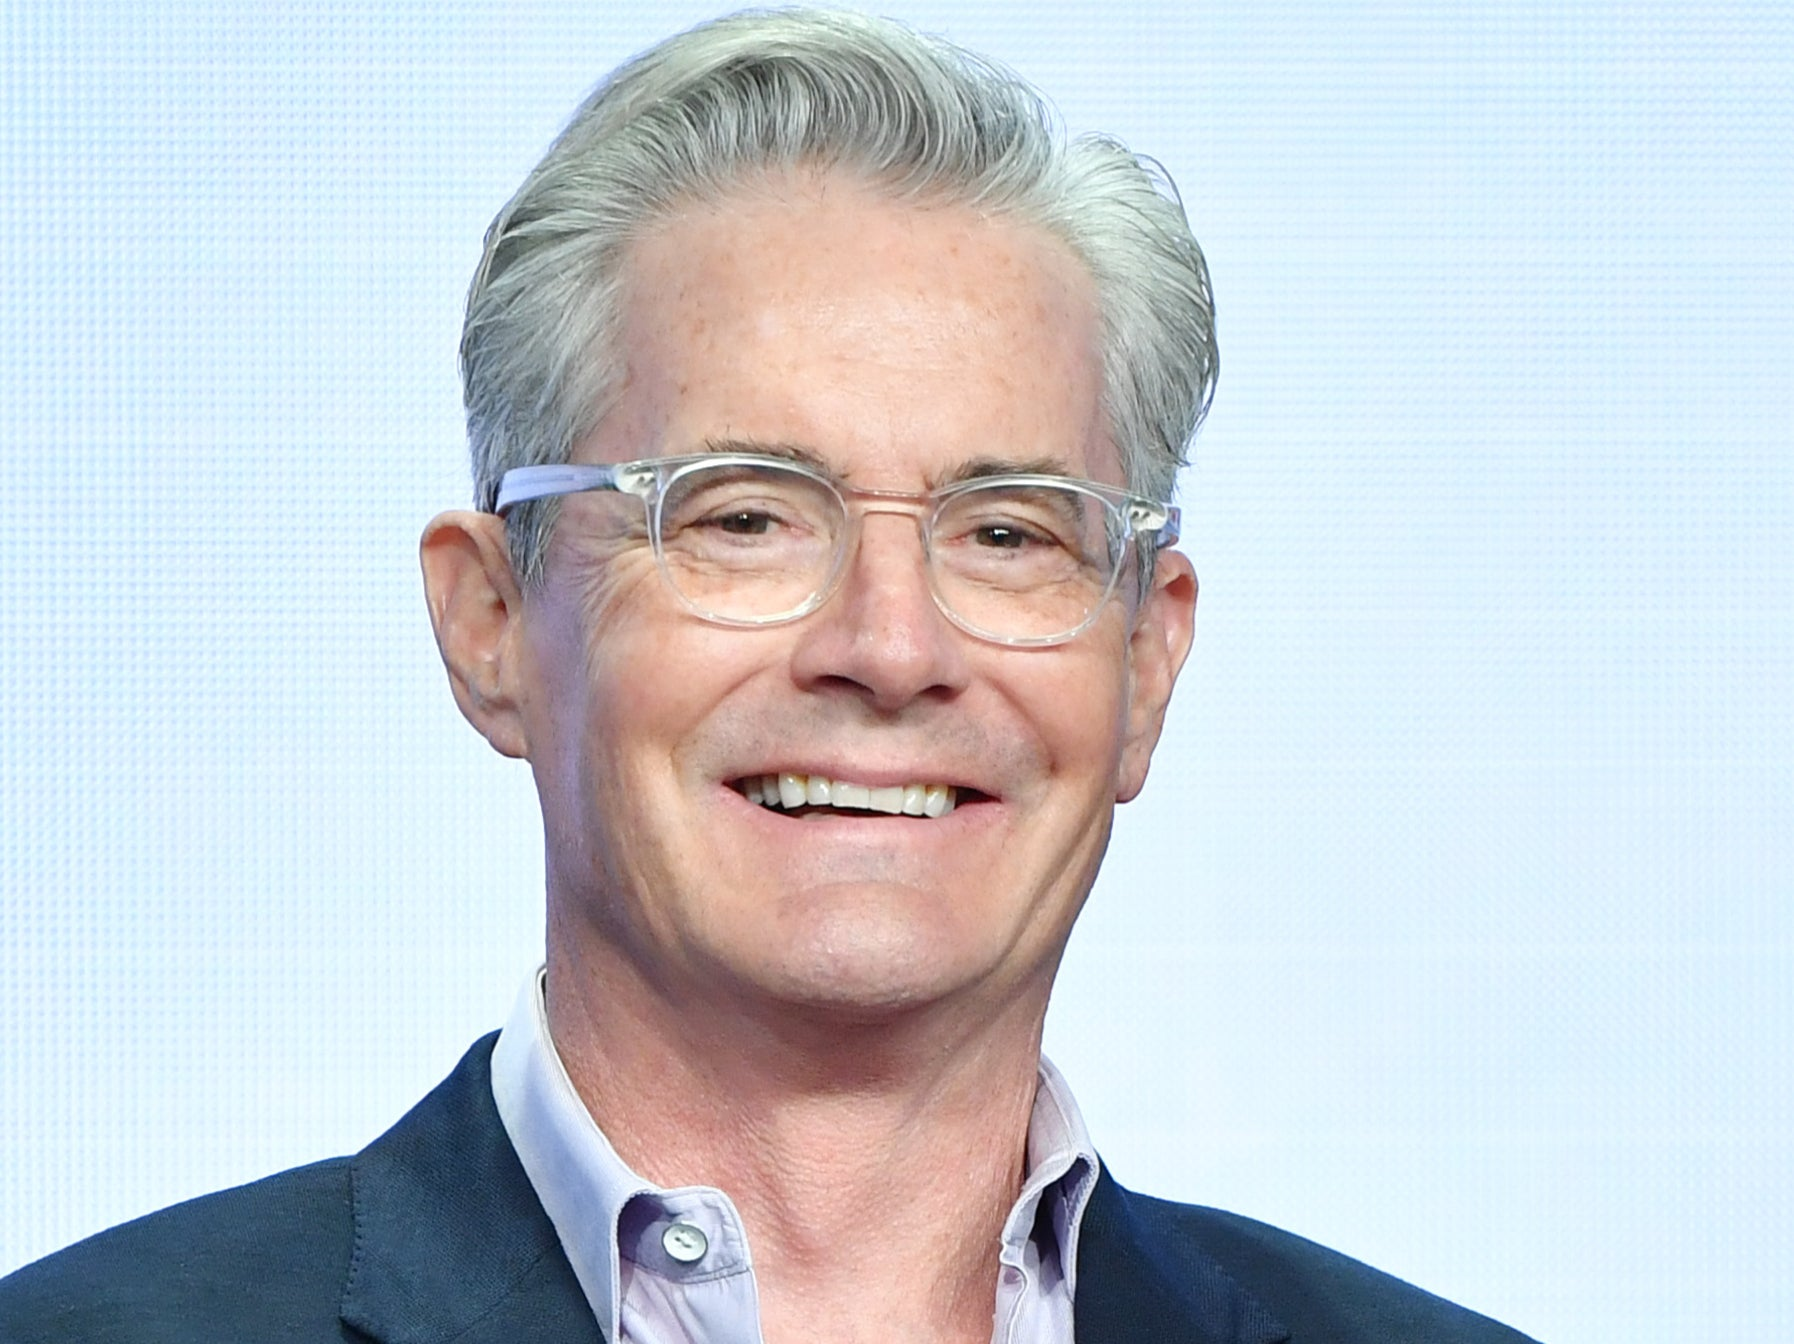 Kyle MacLachlan on David Lynch, his role in the erotic drama Showgirls and playing Roosevelt